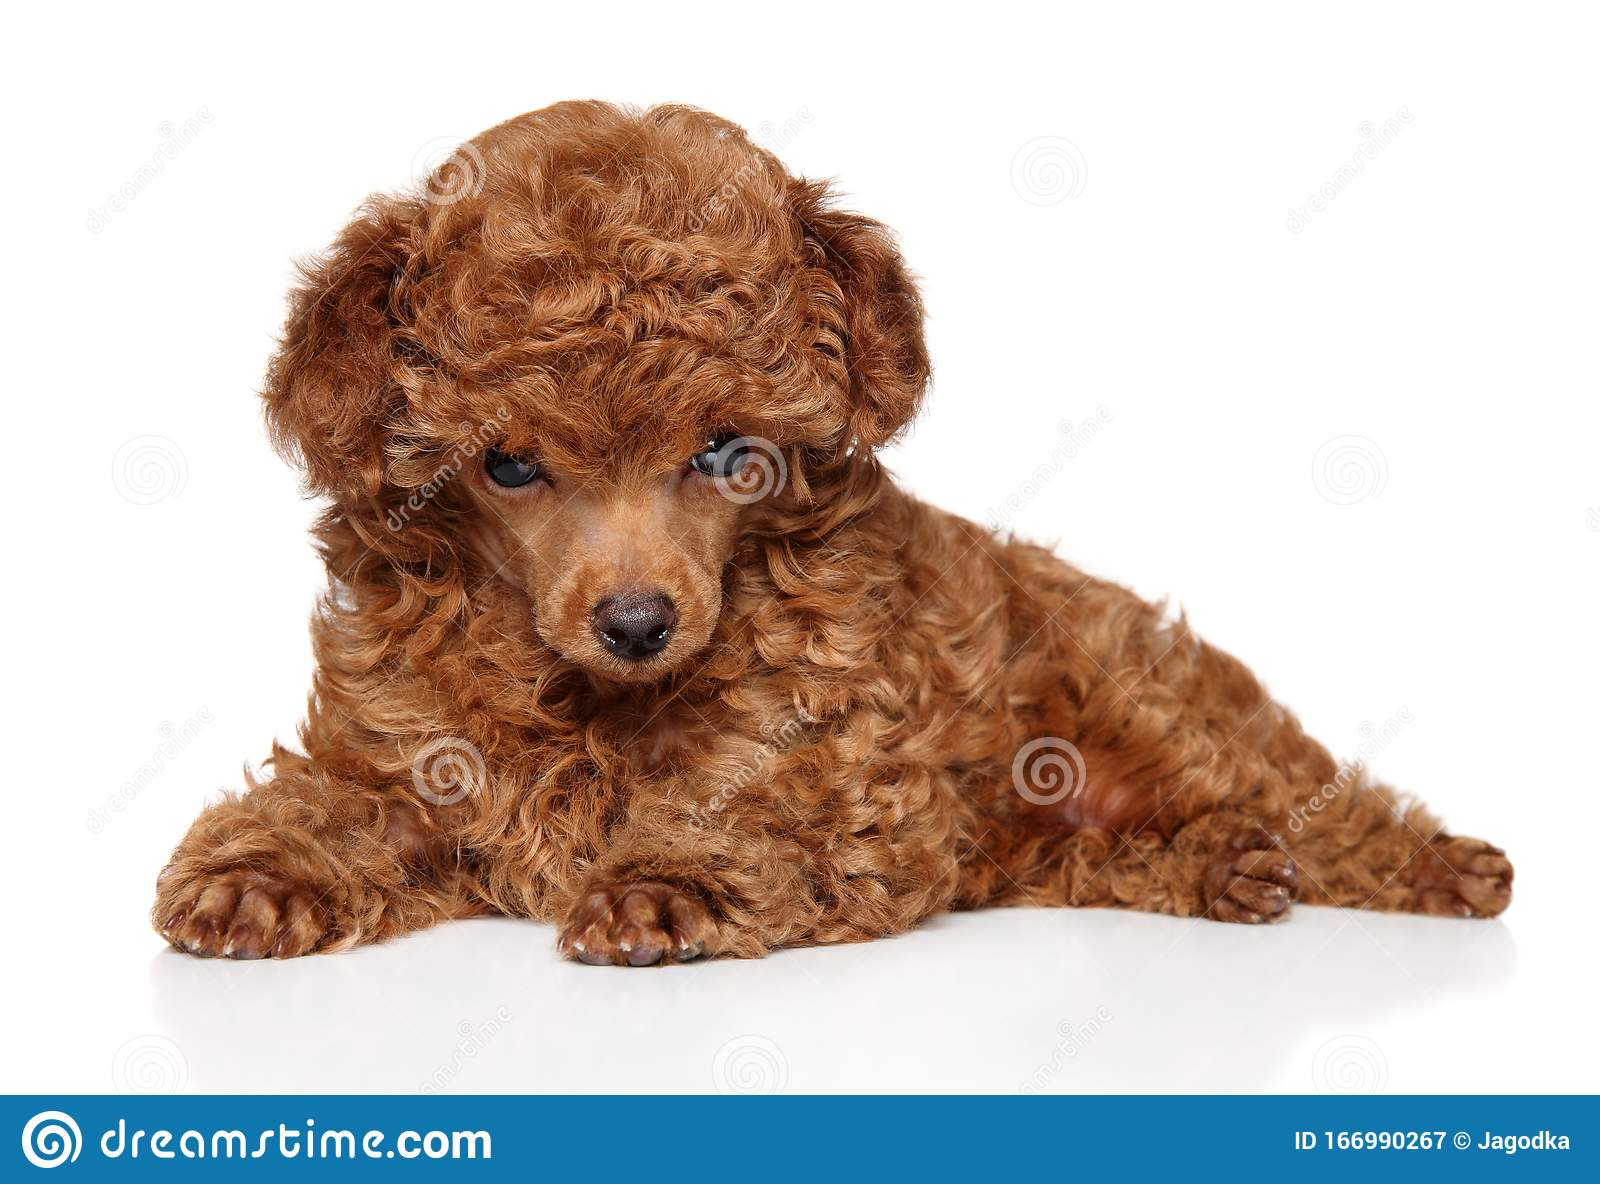 Red Toy Poodle Puppy Lying Stock Image Image Of Portrait 166990267